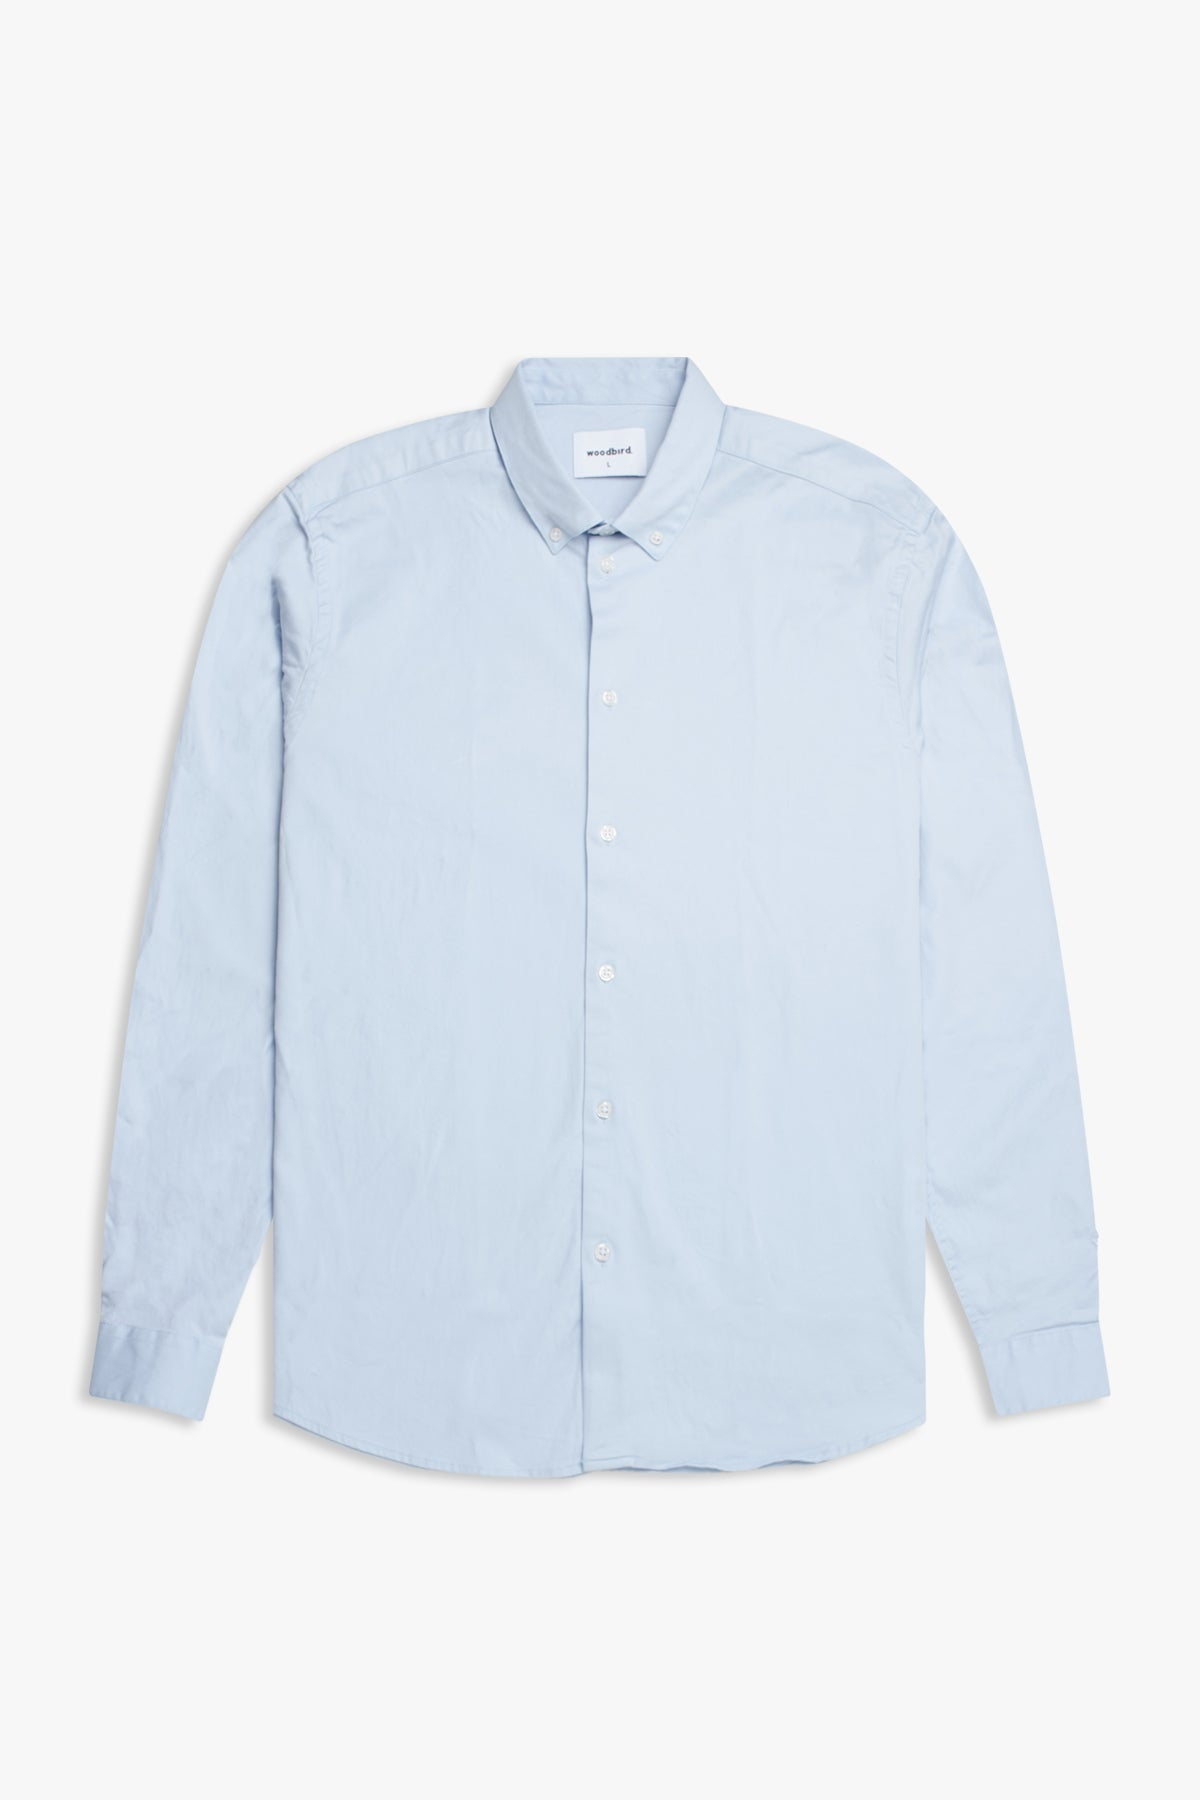 Woodbird Trime L/S Shirt Shirts Light Blue